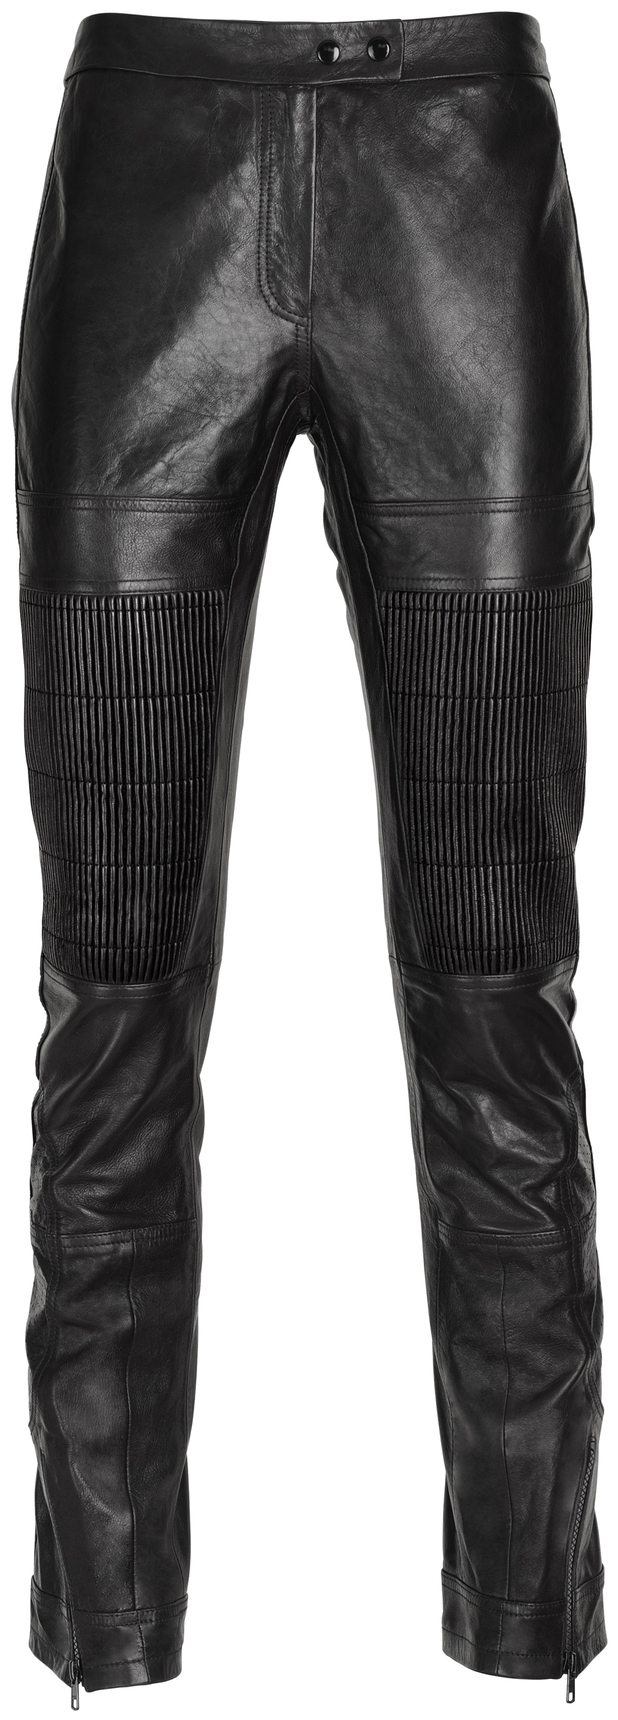 Leather Trousers £99.99 H&m